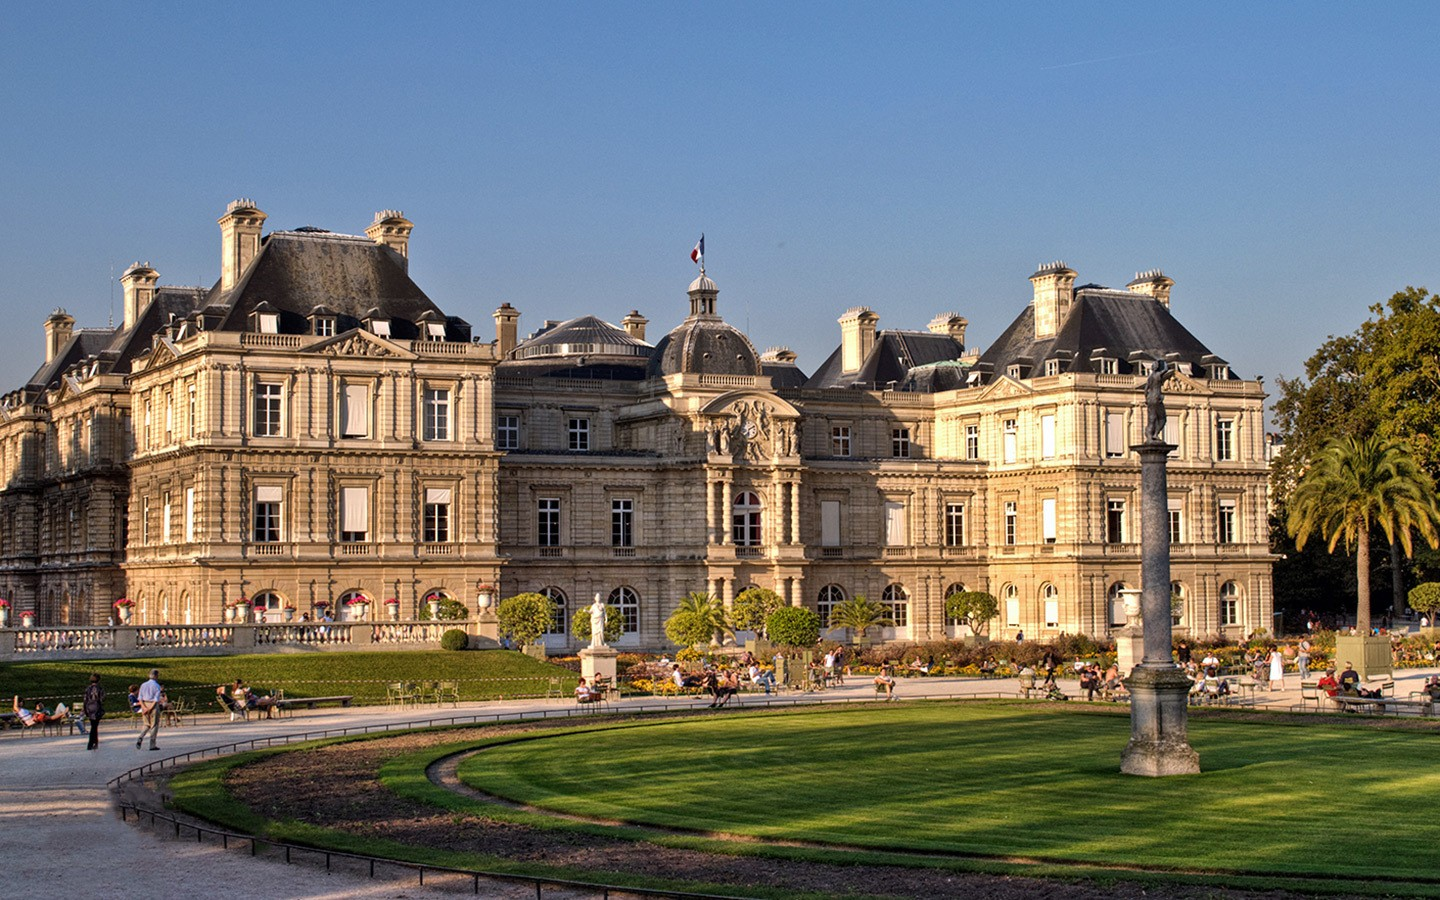 The Luxembourg Palace and gardens, Paris